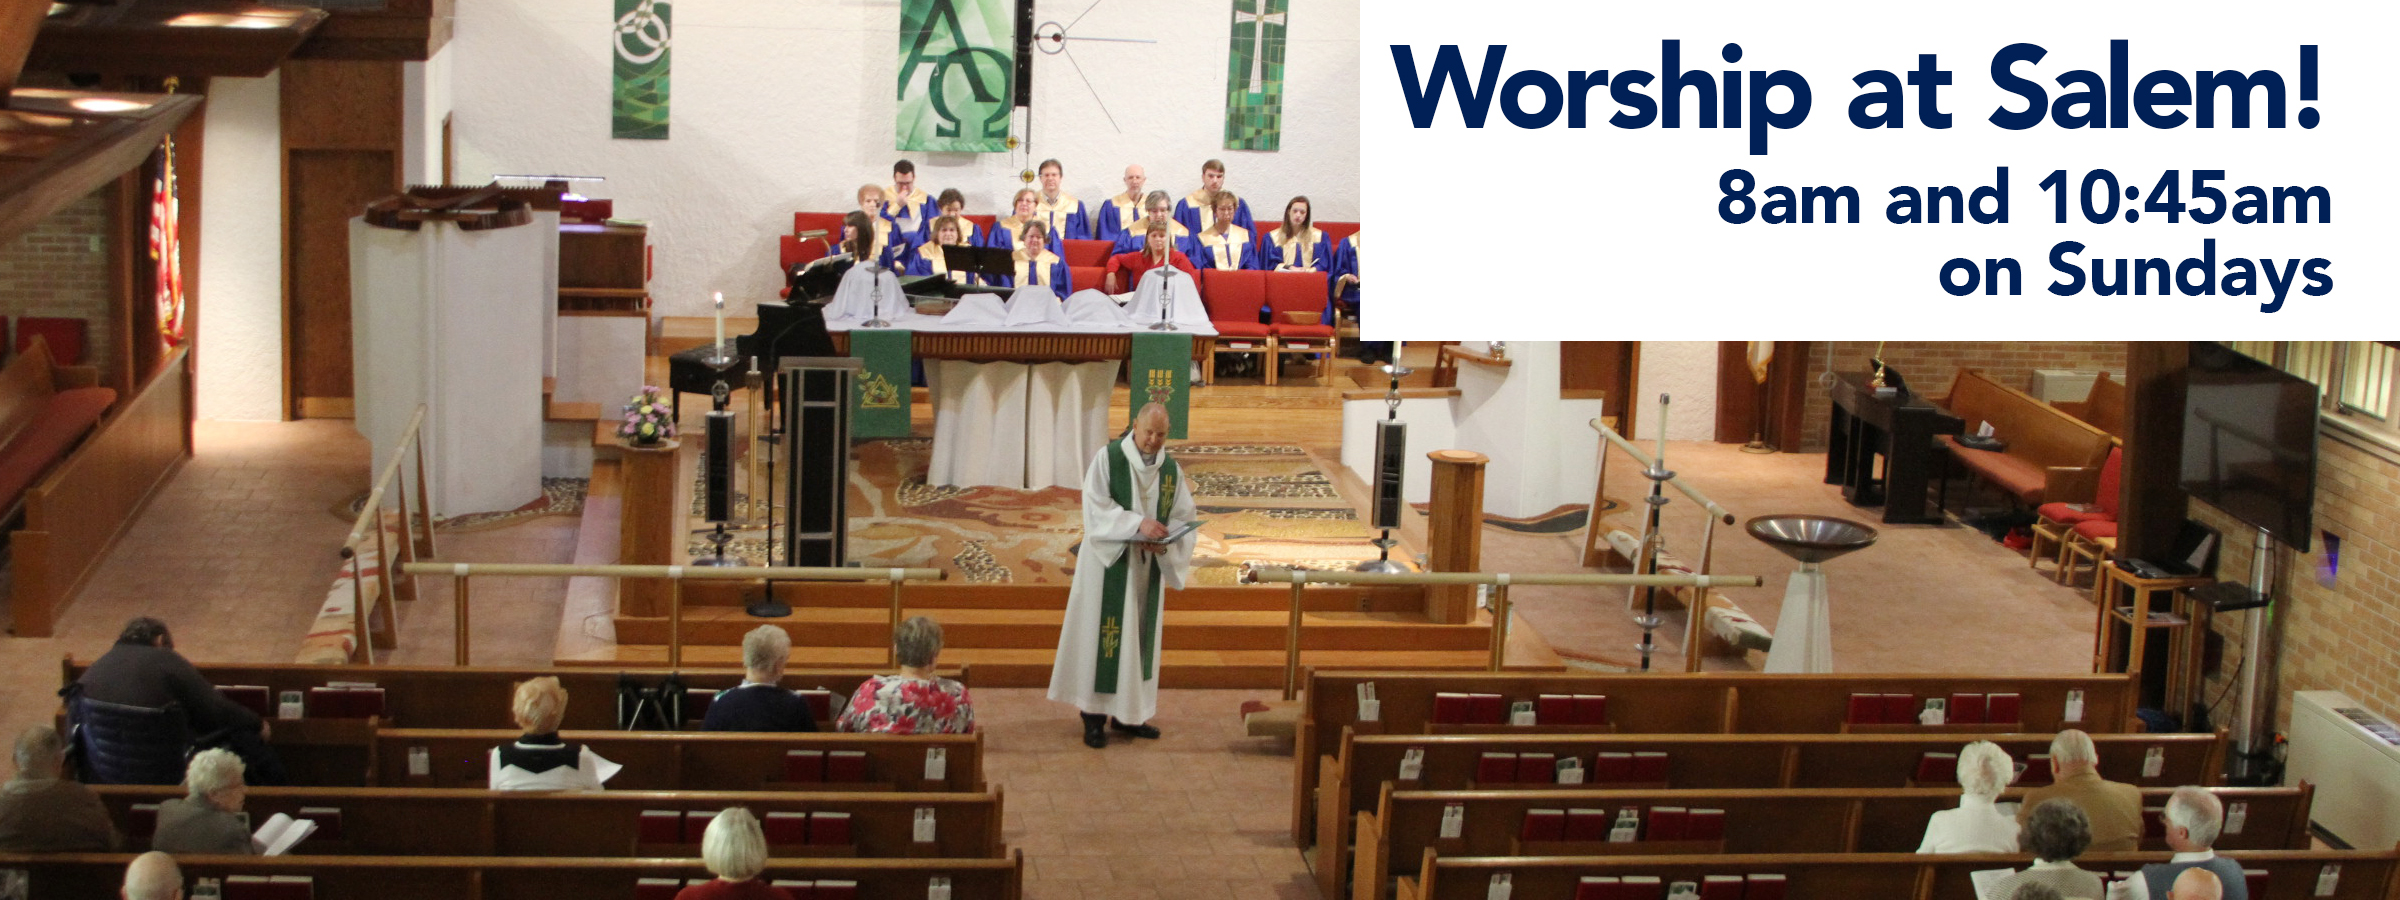 Worship on Sundays at Salem